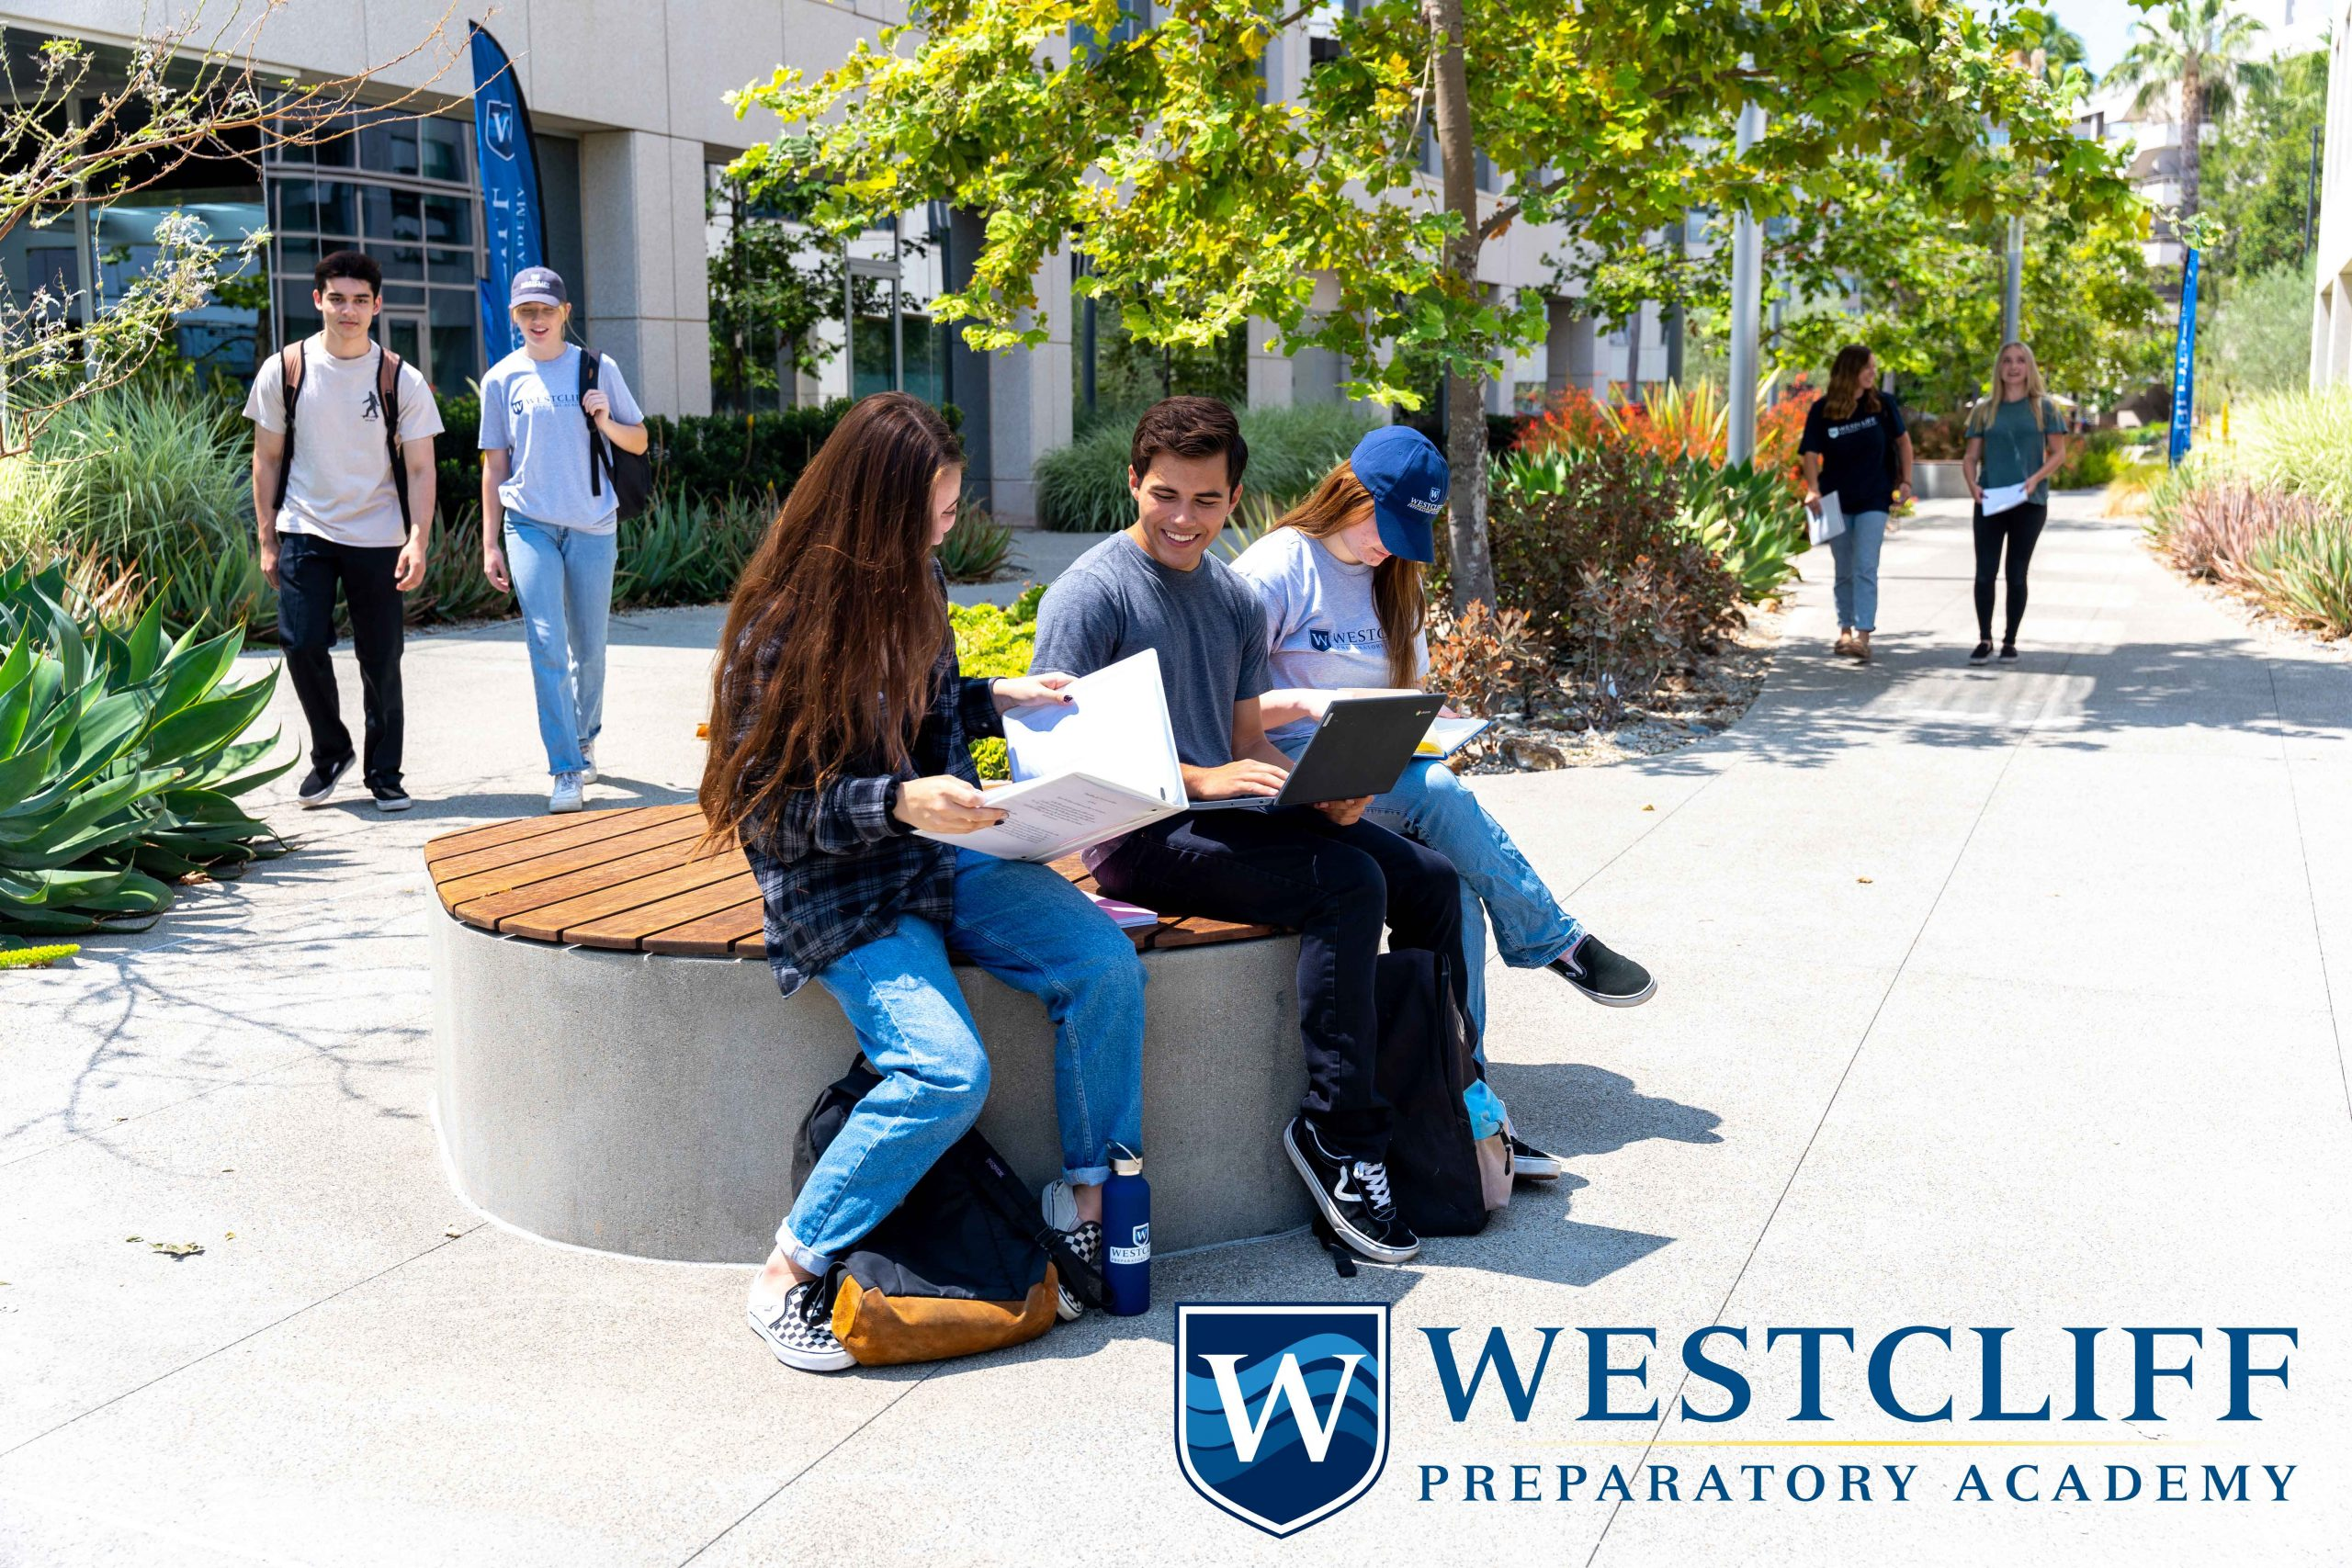 Westcliff Preparatory Academy Offers High School Students The Unique Opportunity to Participate in Collegiate-Level Academics and Athletics